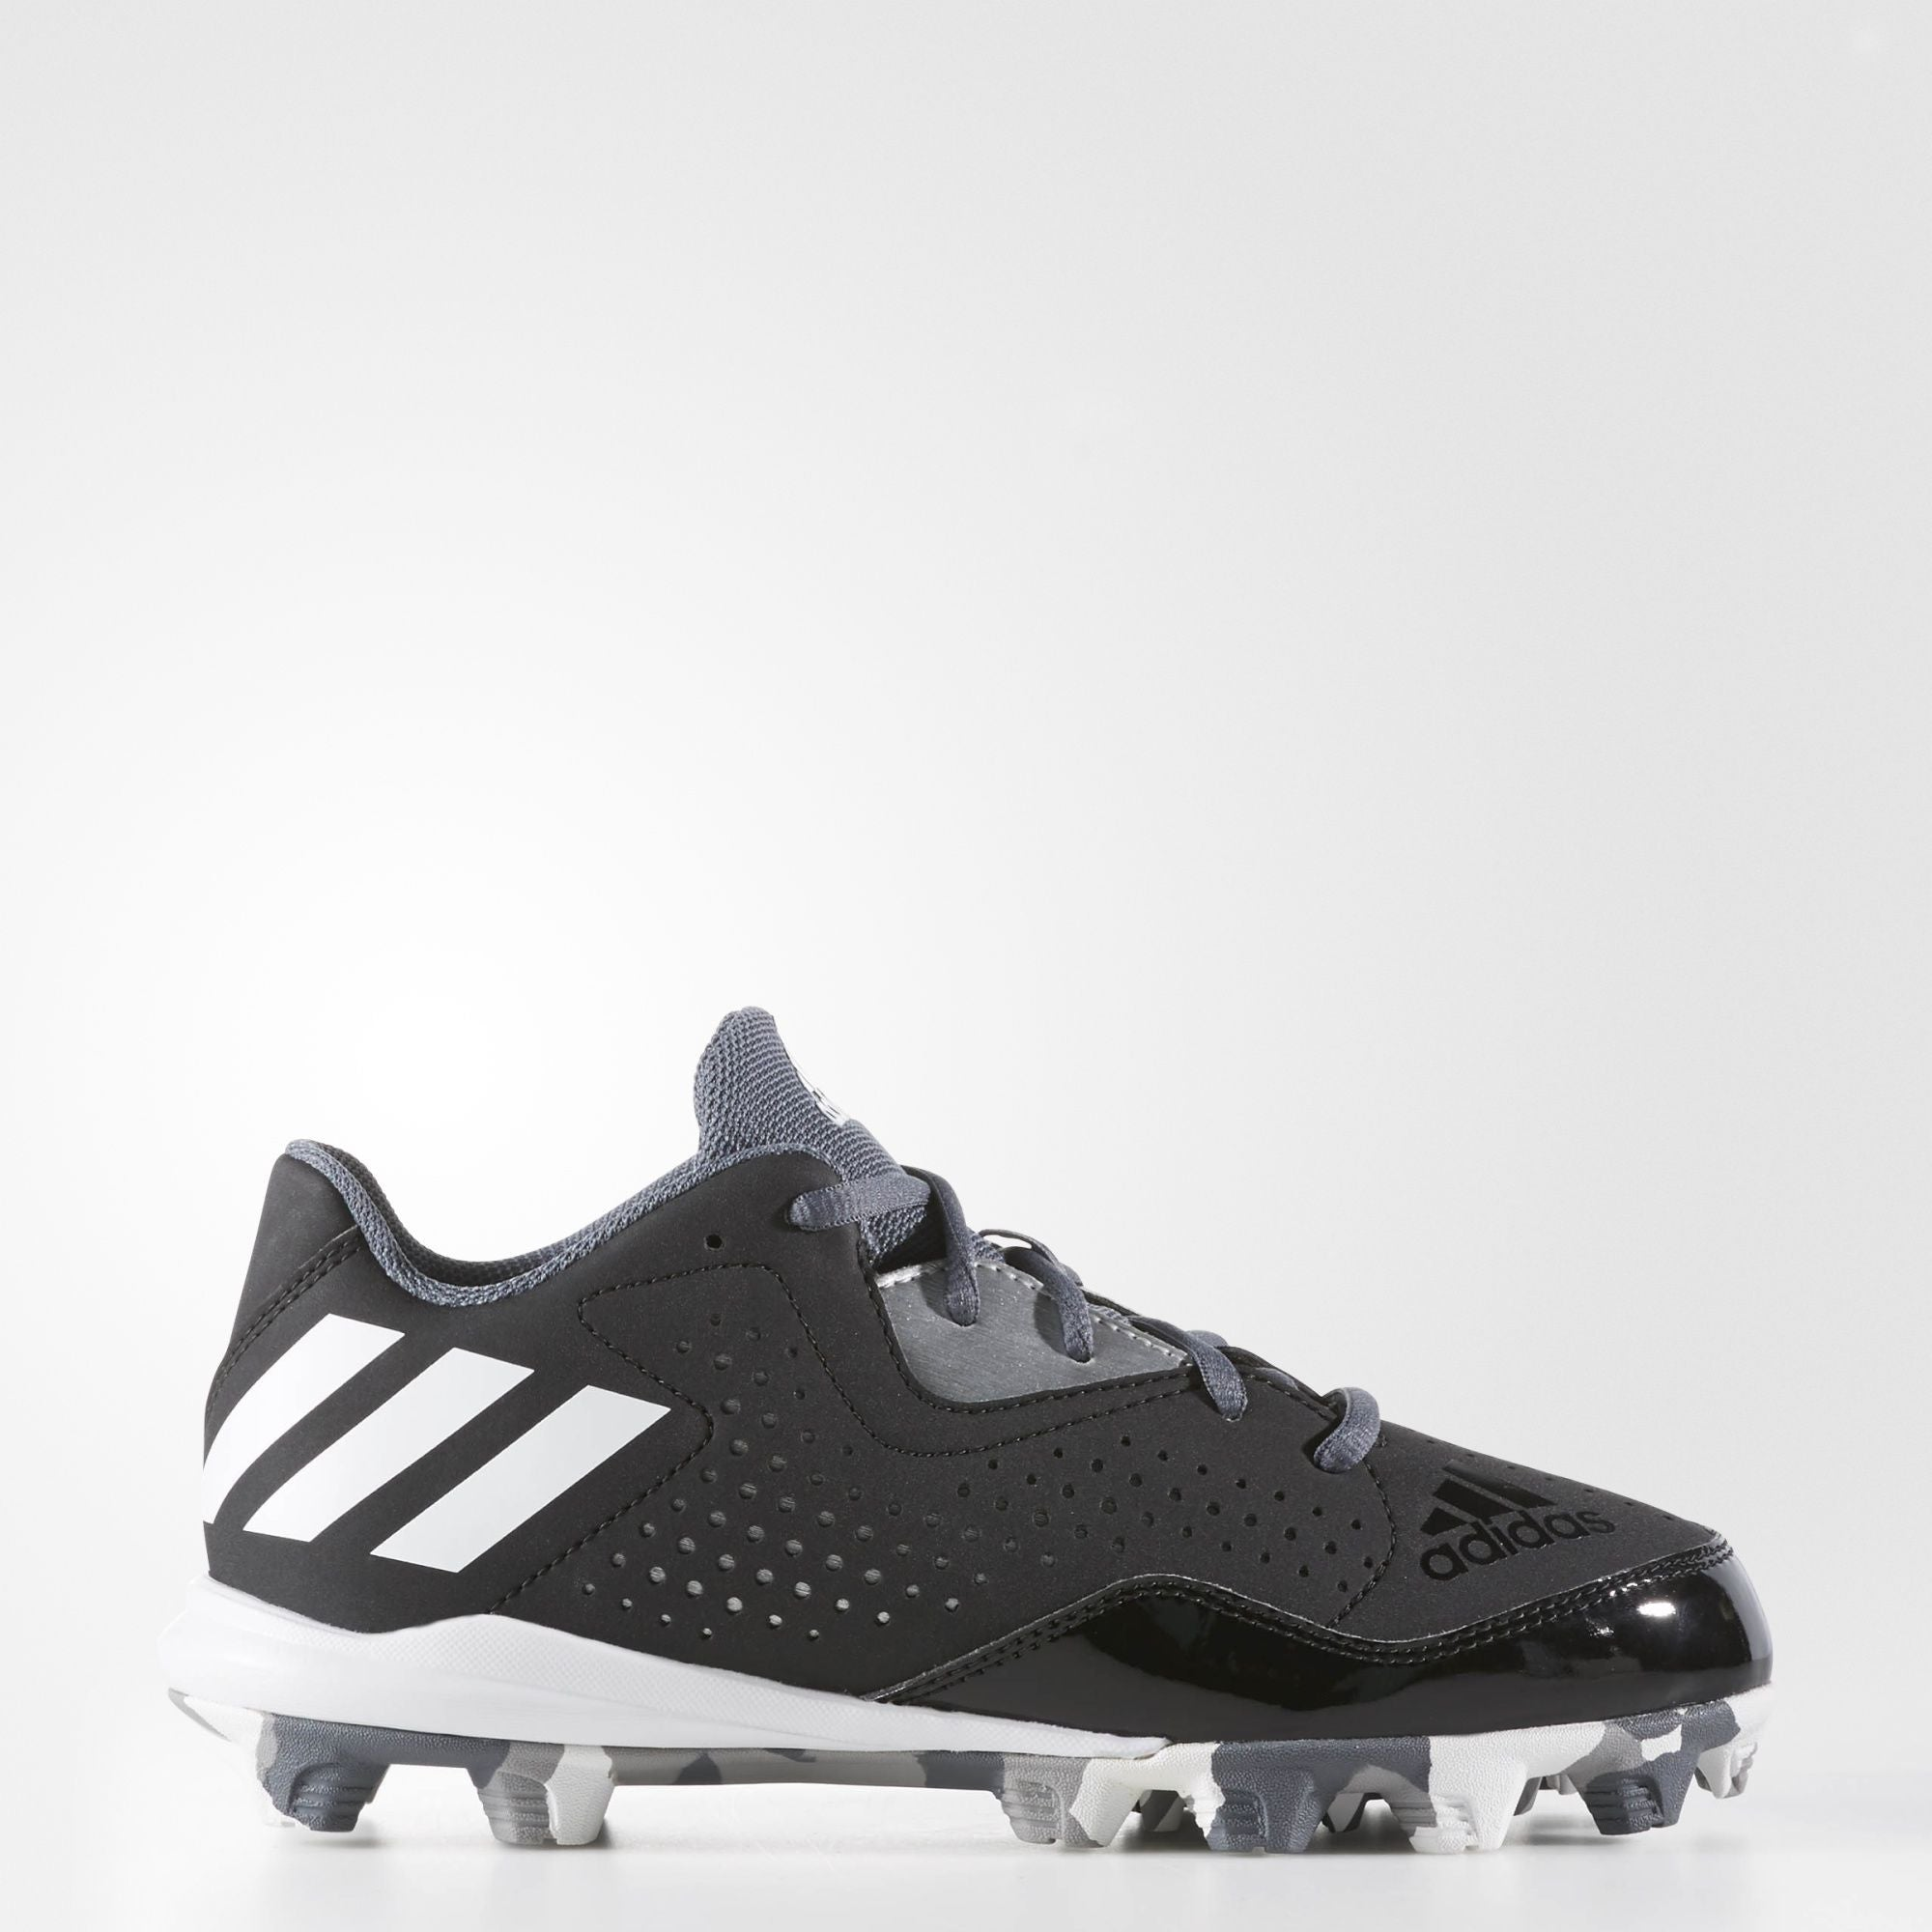 adidas Wheelhouse 4 Baseball Cleat